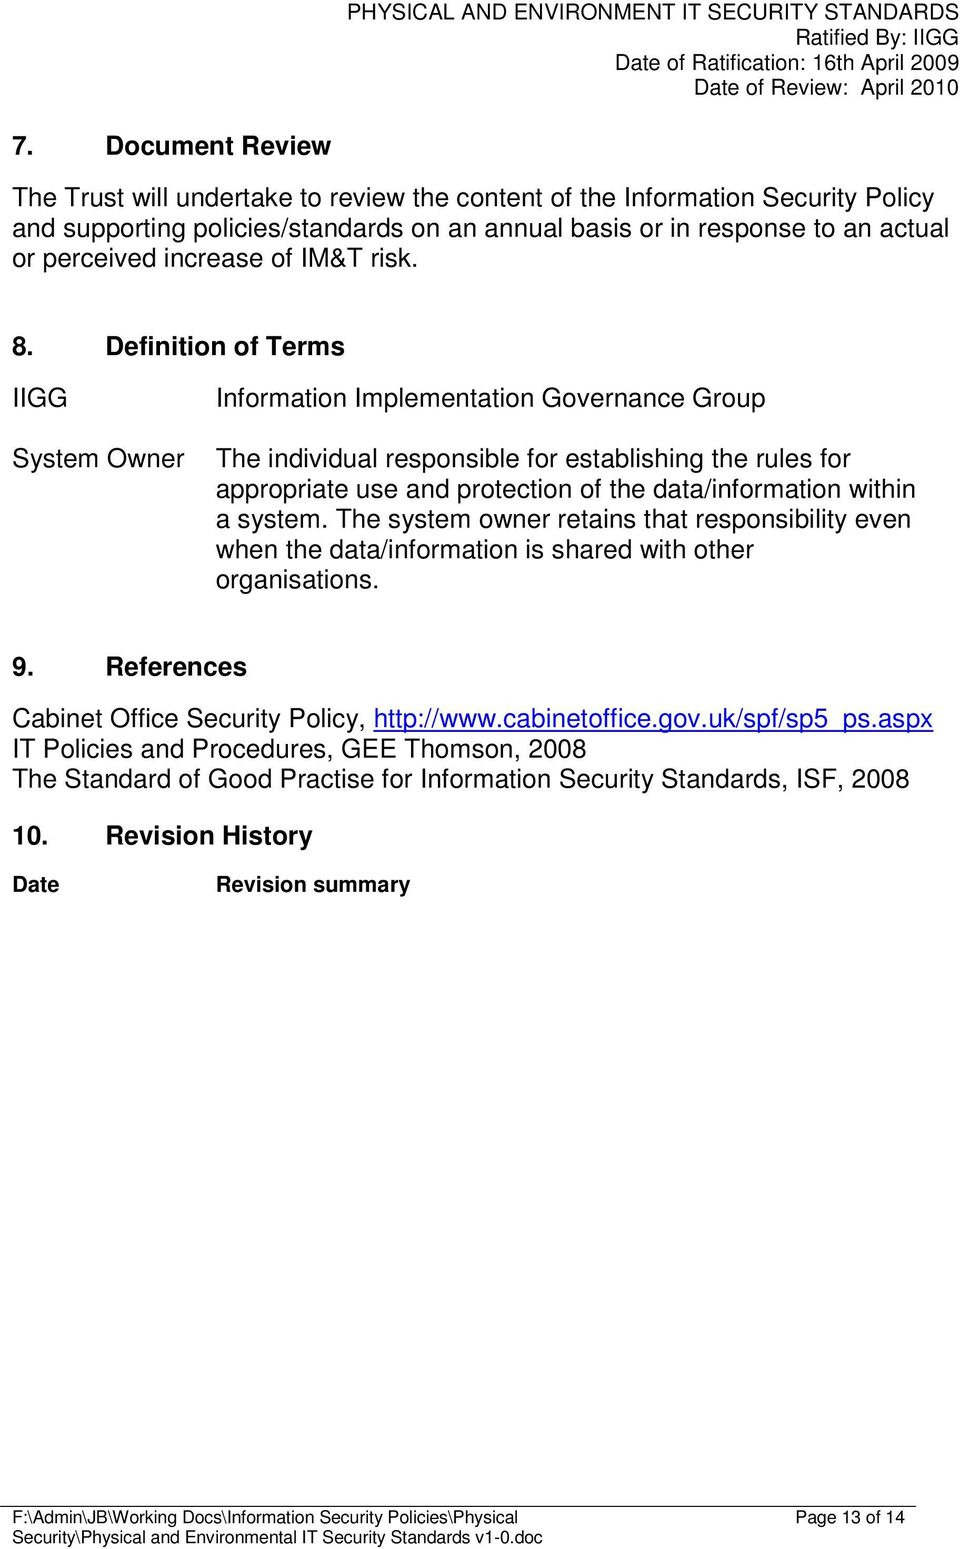 Definition of Terms IIGG System Owner Information Implementation Governance Group The individual responsible for establishing the rules for appropriate use and protection of the data/information